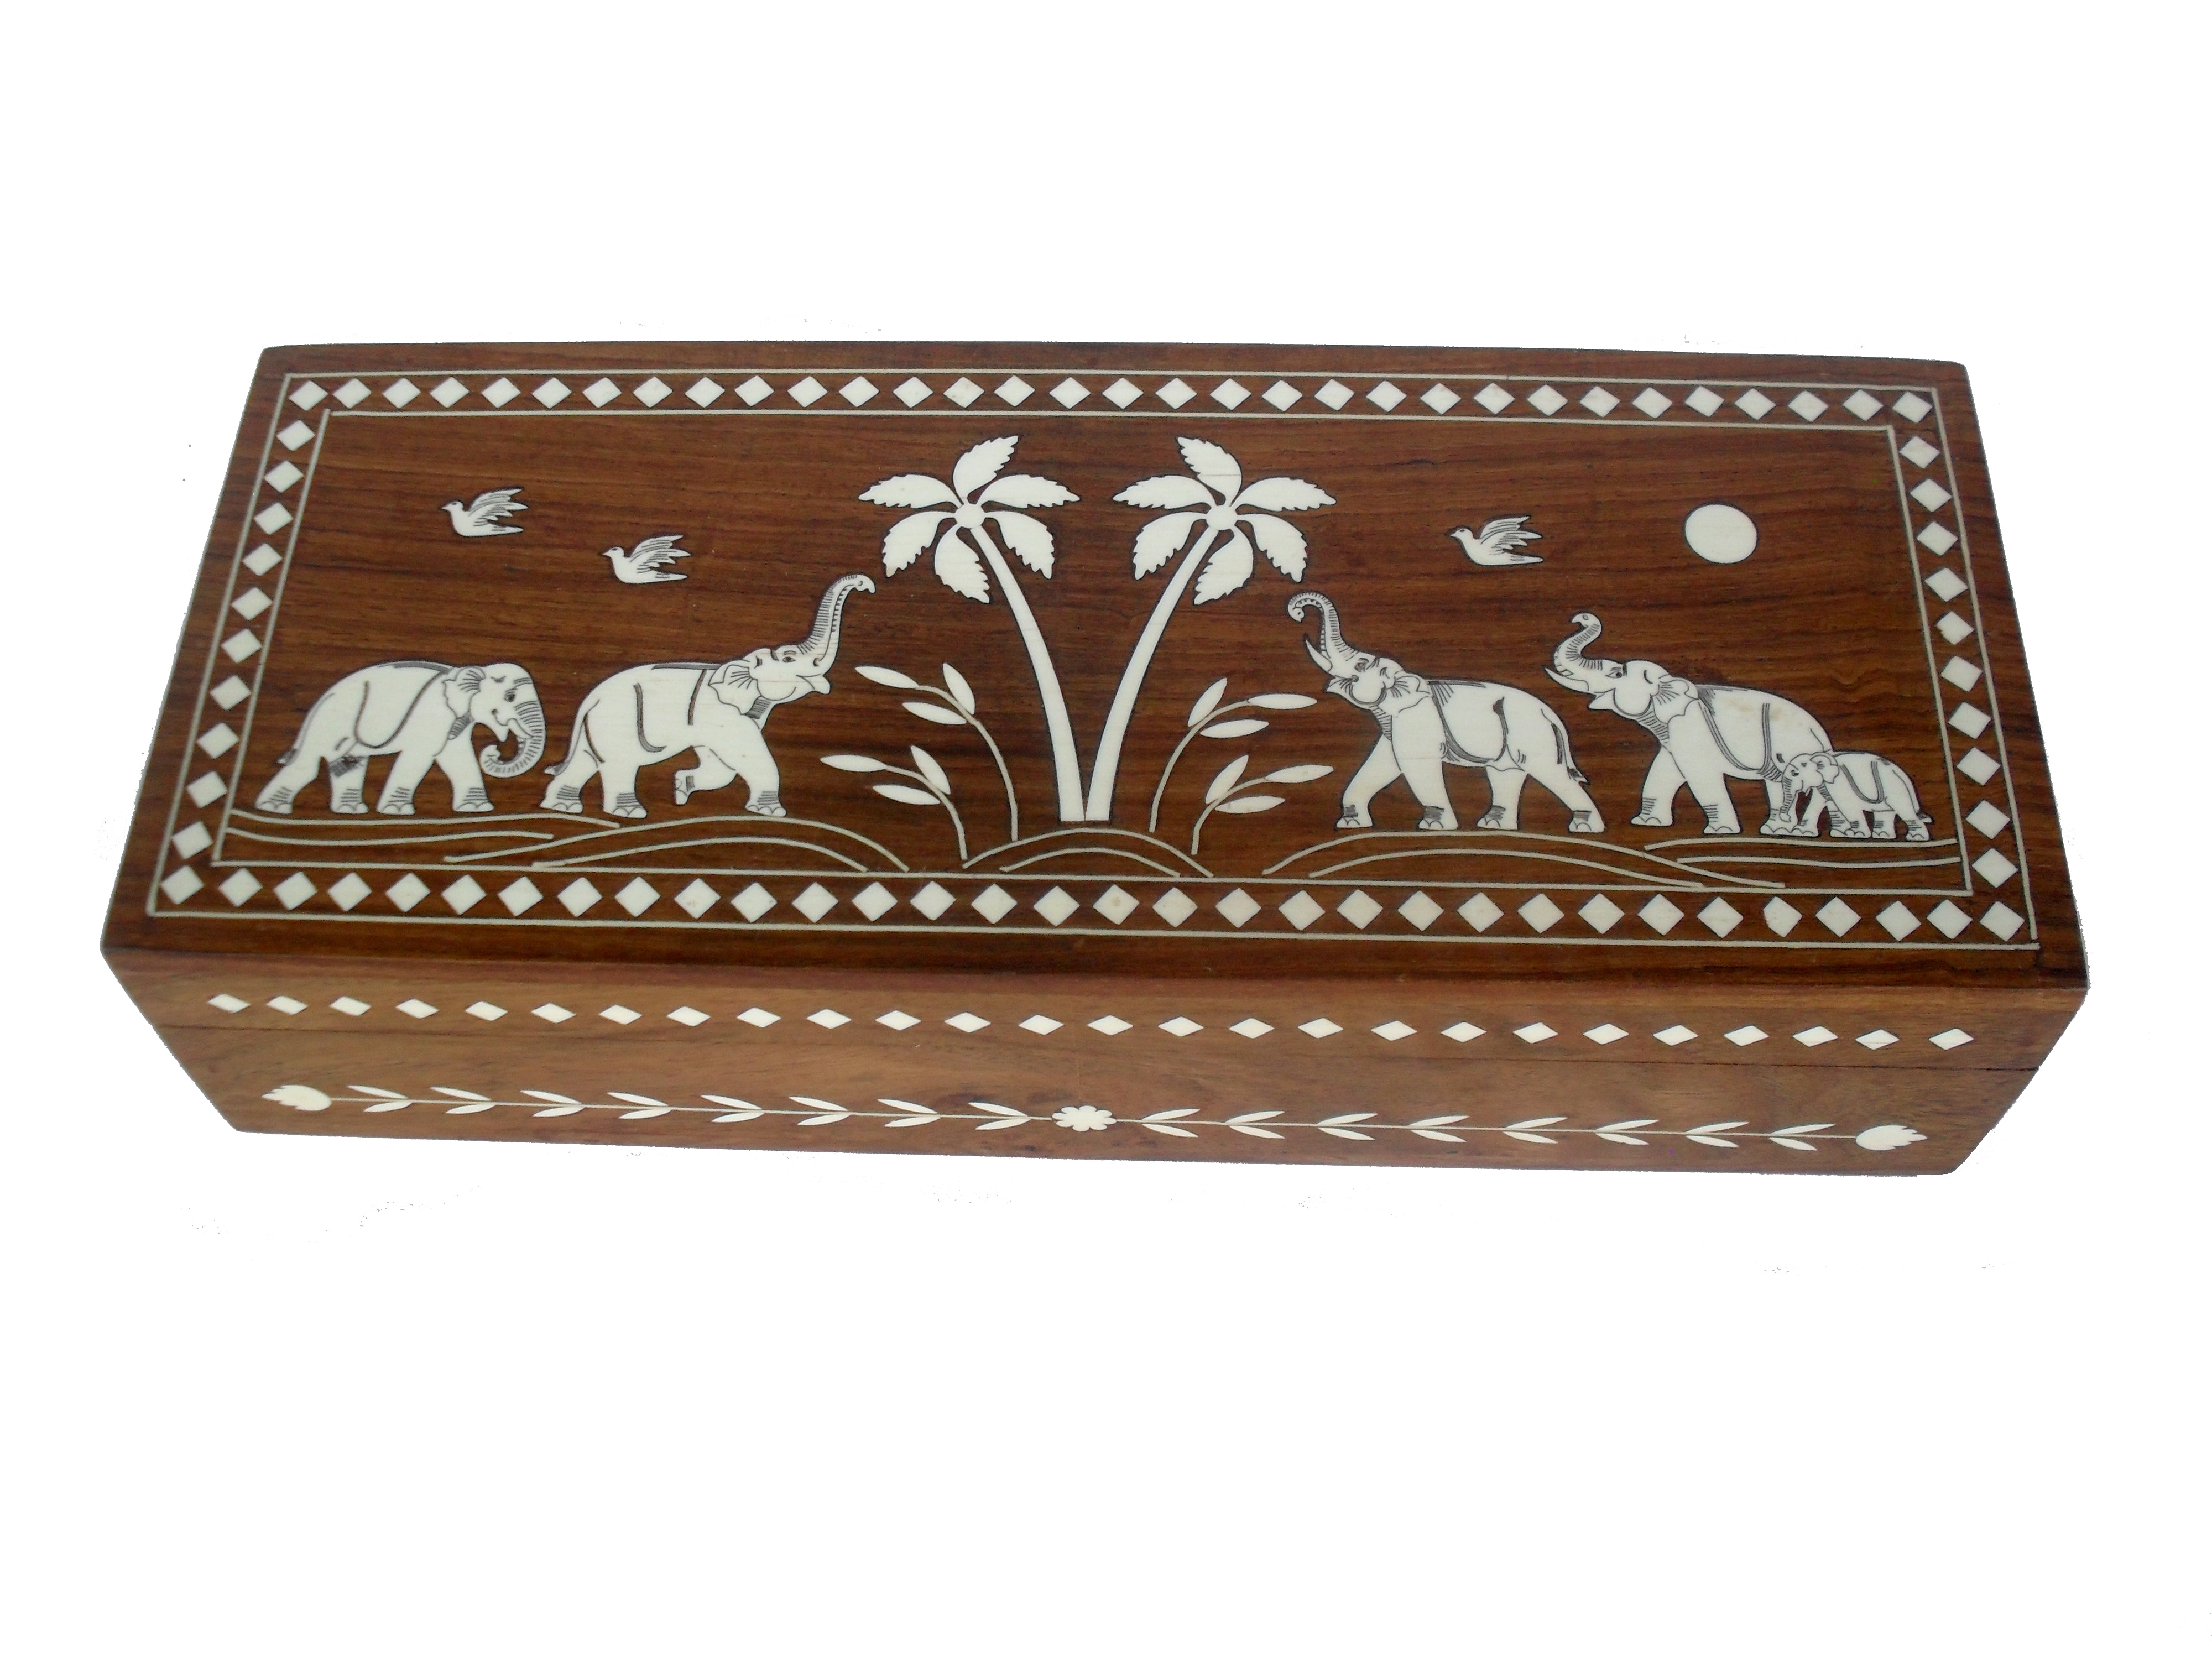 Sheela's decorative rectangular box is  handicrfted with teak wood, adorned a beautiful trees & elephant picture with white inlay on the top of the box.This trinkate box is use to store your delicate jewellery, marble collection , deck of cards, charms and any other items of value to you.